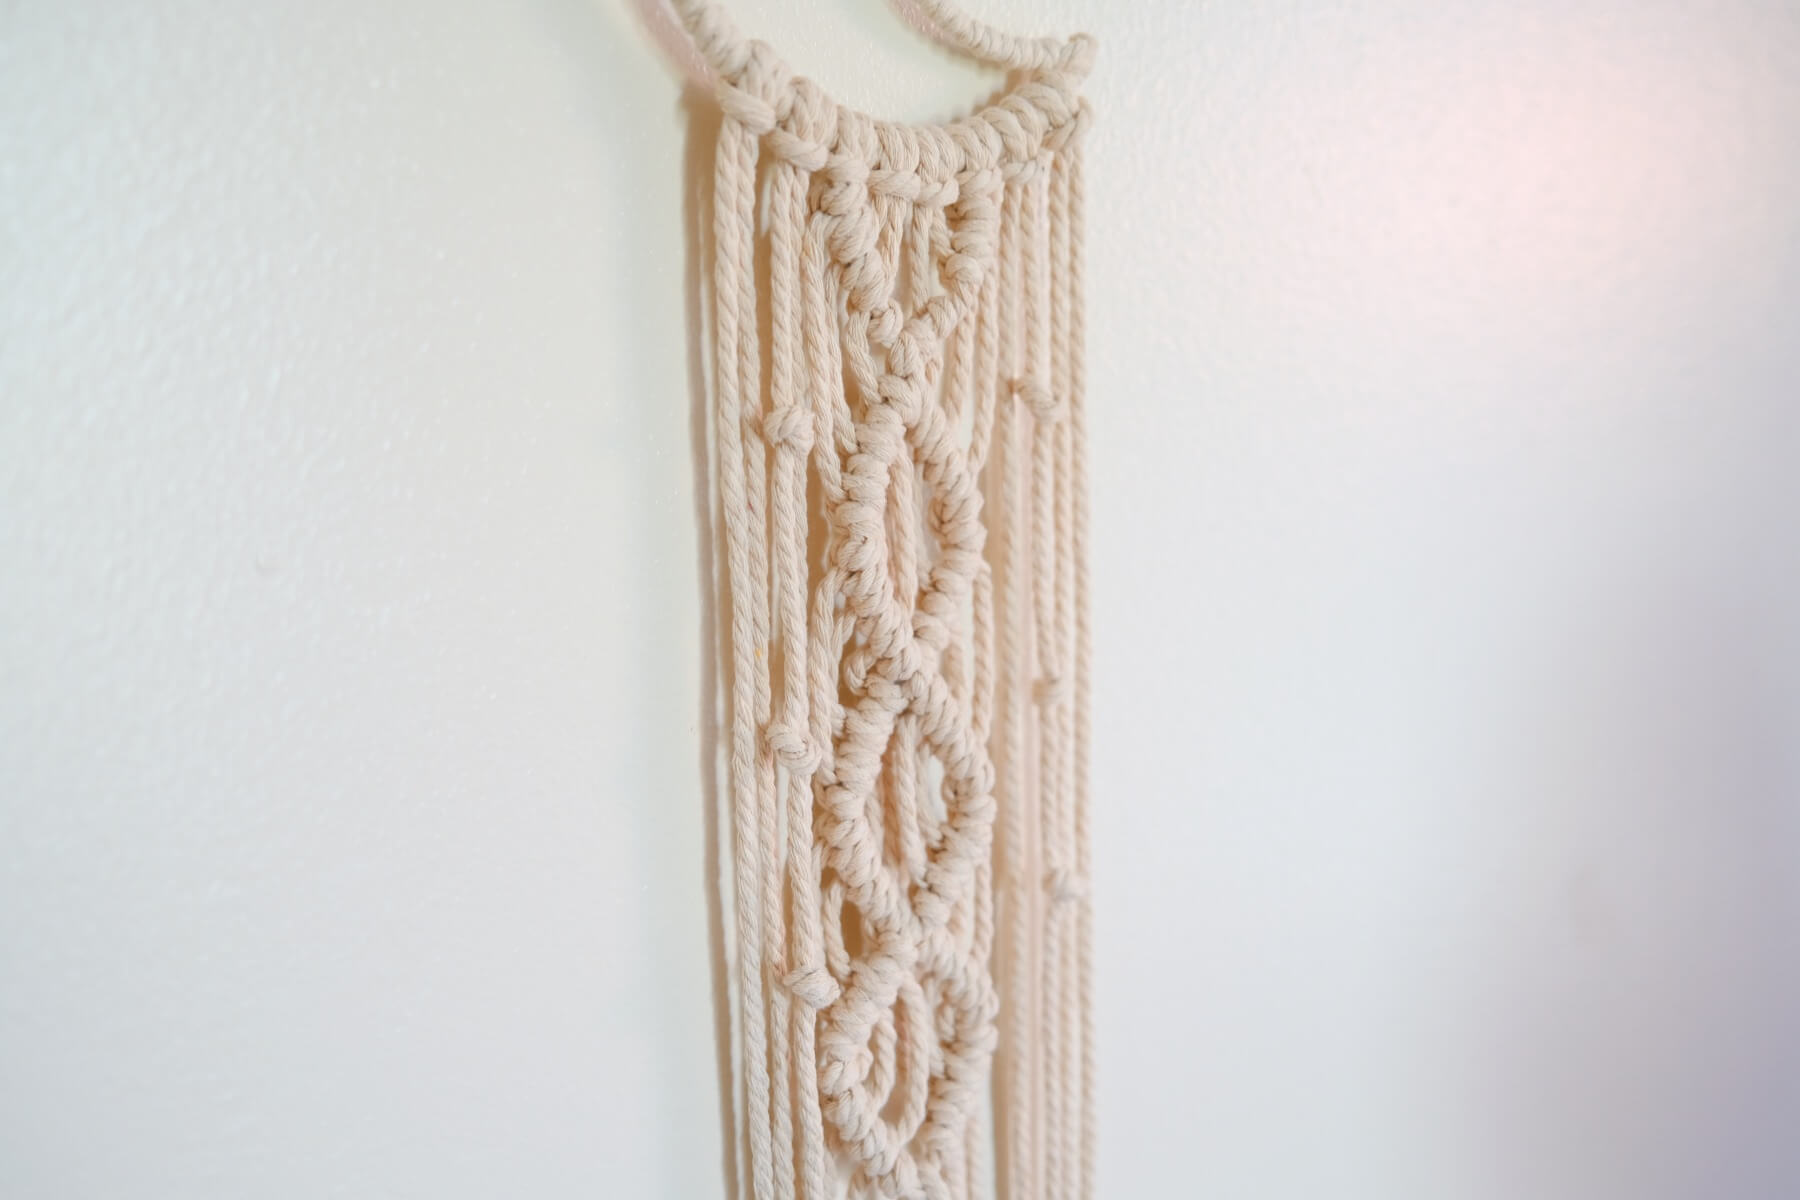 finished macrame ready to add the lights